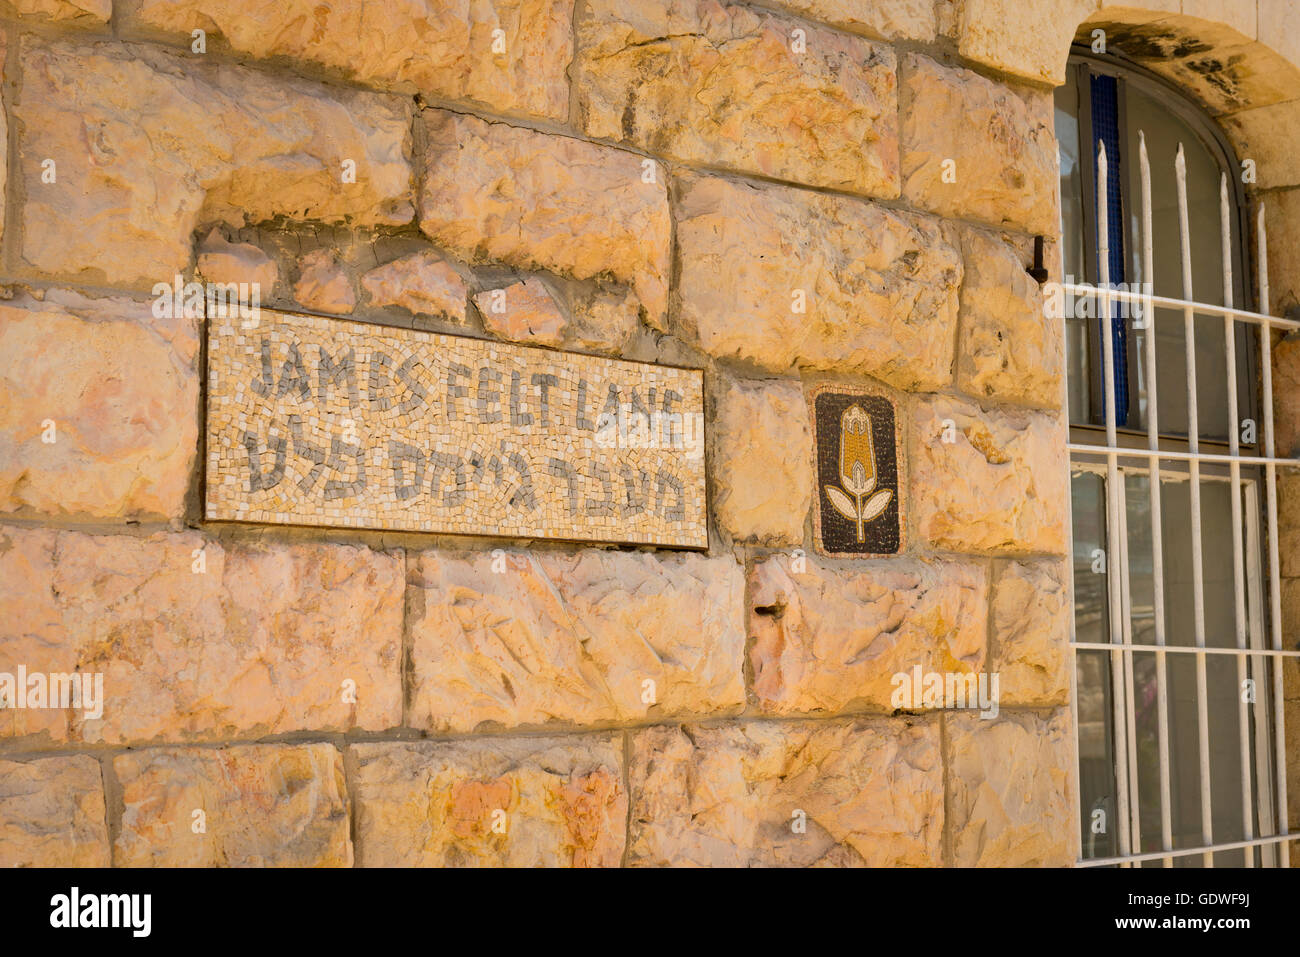 Israel Jerusalem Modern City Artists Colony street - James Felt Lane - mosaic road sign - Stock Image